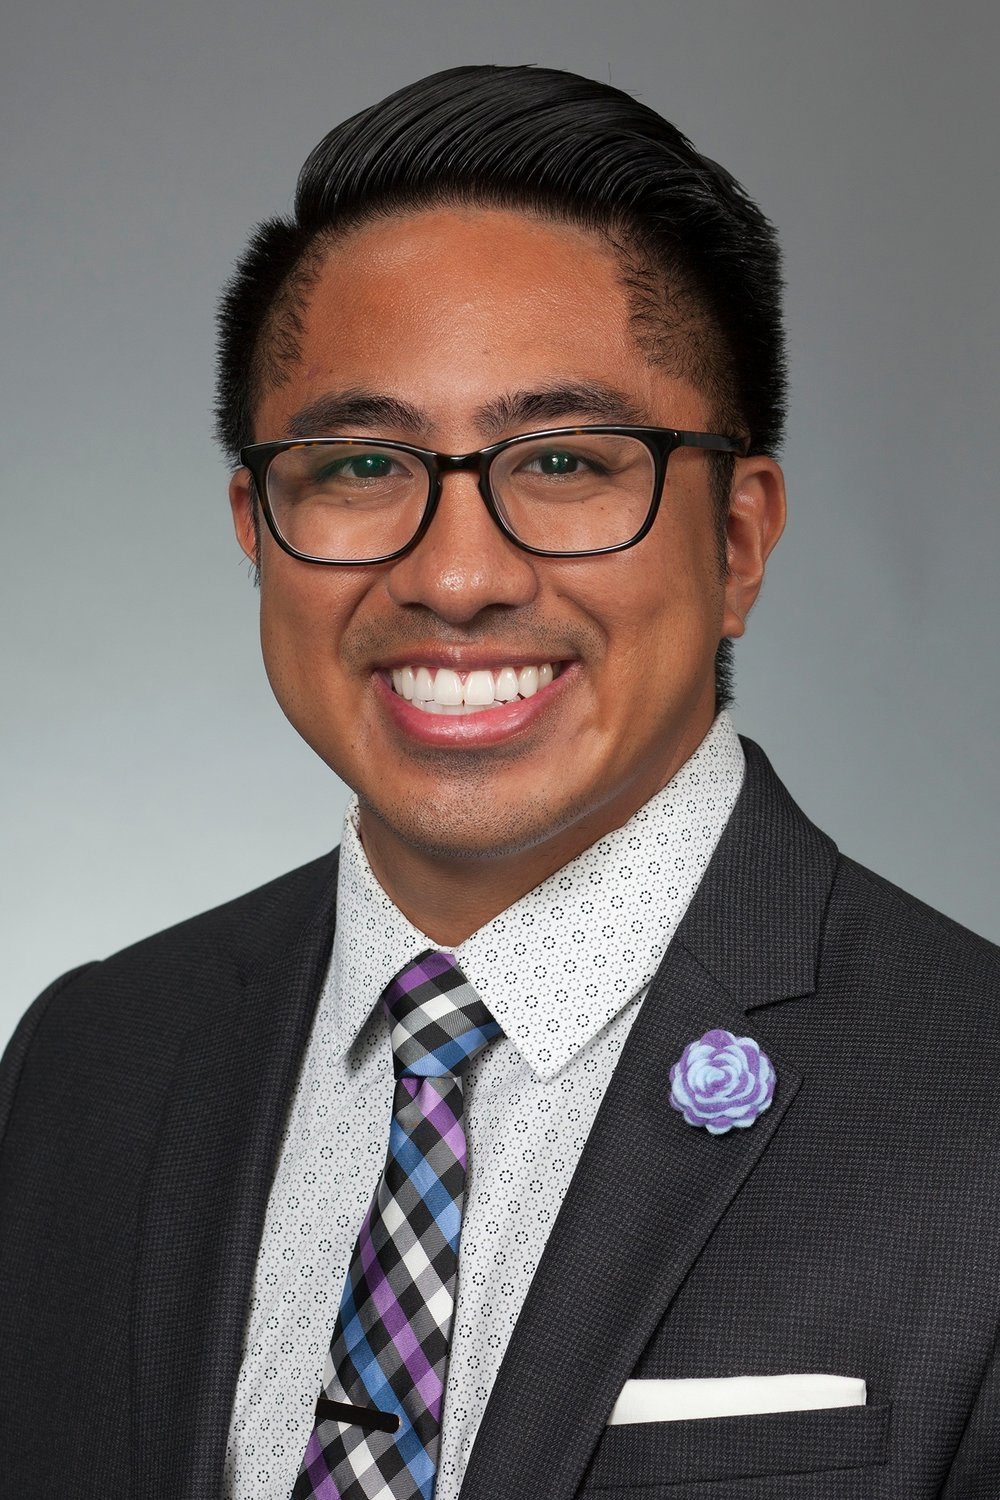 Dr. Kyle Viloria - Originally from Virginia Beach, Dr. Viloria earned his undergraduate degree, magna cum laude, from Old Dominion University and earned his Doctor of Dental Medicine degree from Temple University. He completed his residency at East Carolina University School of Dentistry.He is a member of the American Dental Association, the Academy of General Dentistry, the North Carolina Dental Society, and the American Academy of Cosmetic Dentistry. Dr. Viloria takes many continuing education courses each year to stay abreast of the latest advances in the dental field.